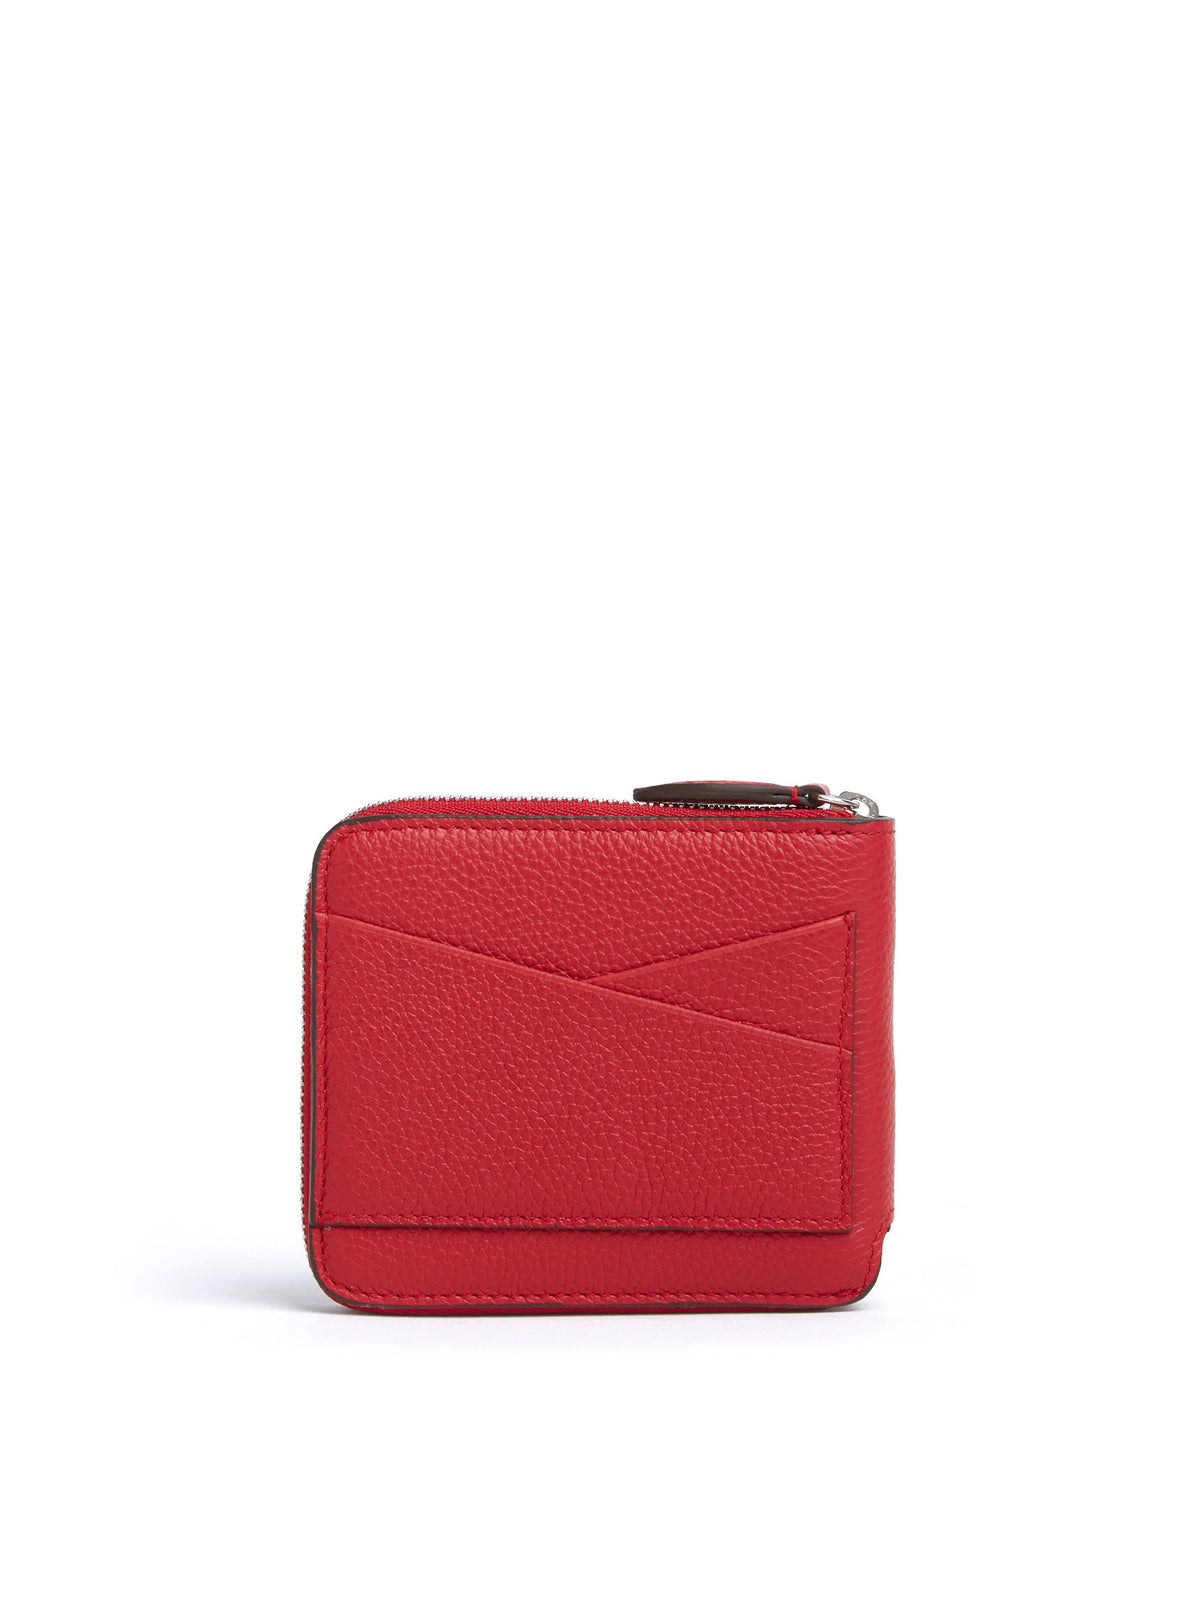 Mark Cross Bi-Fold Leather Zip Wallet Tumbled Grain Mc Red Back